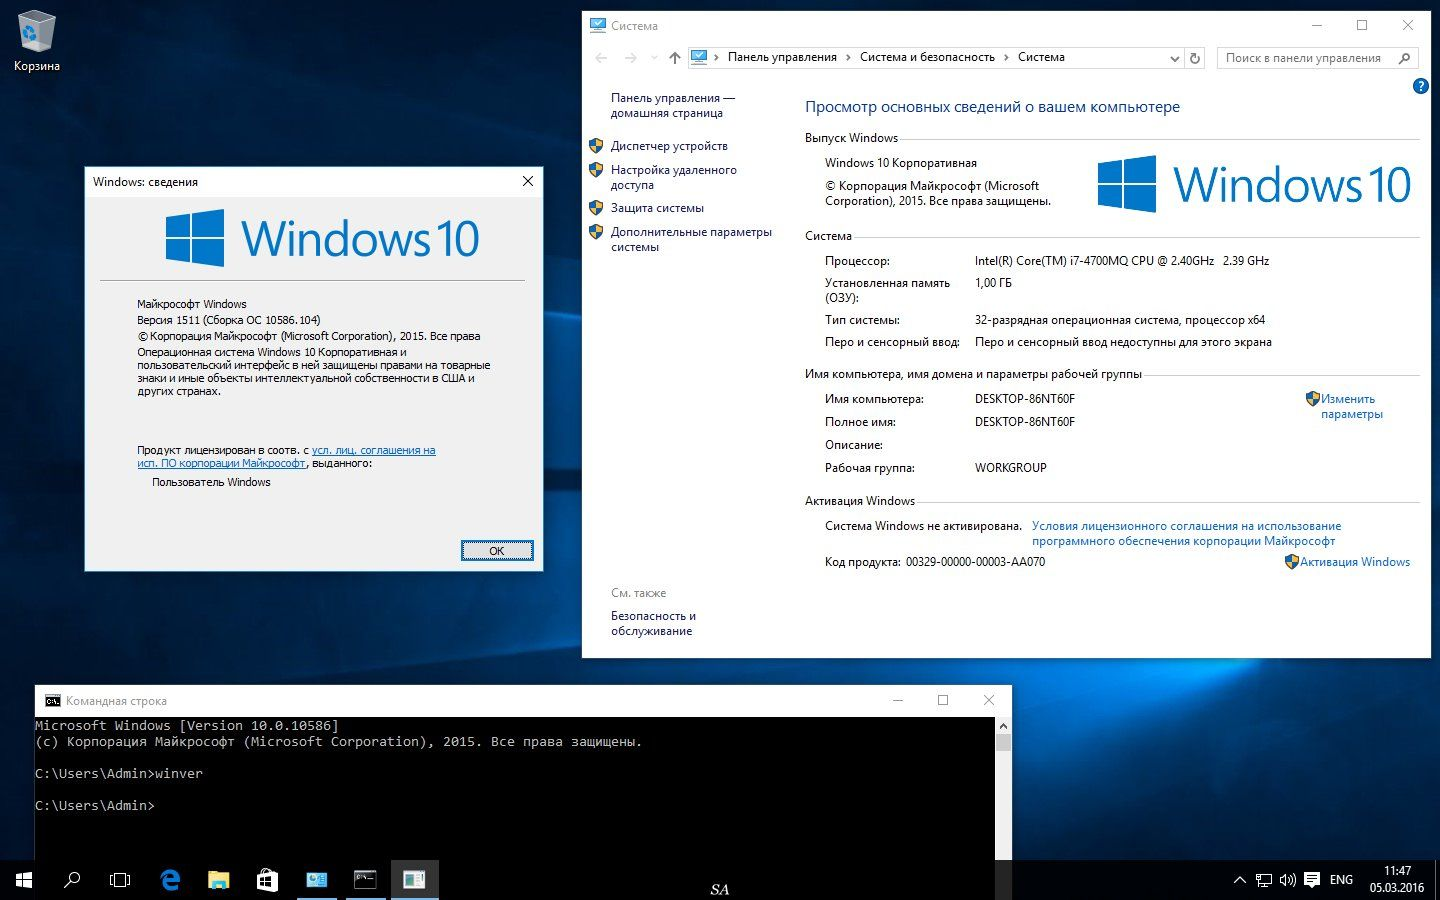 Microsoft Windows 10 Enterprise 10.0.10586 Version 1511 (Updated Feb 2016) - Оригинальные образы от Microsoft MSDN